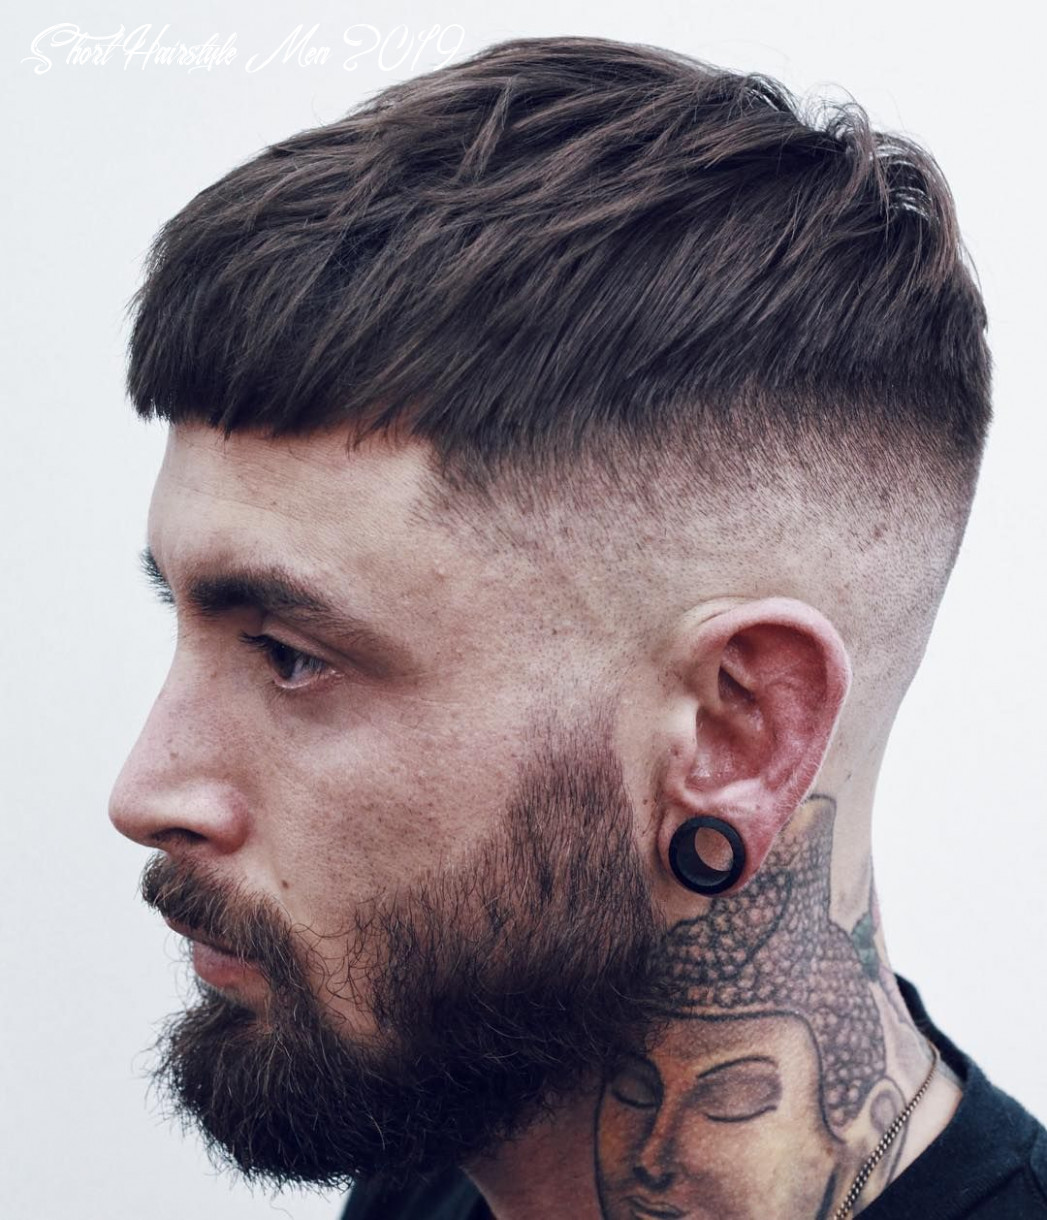 The 8 best short hairstyles for men | improb short hairstyle men 2019